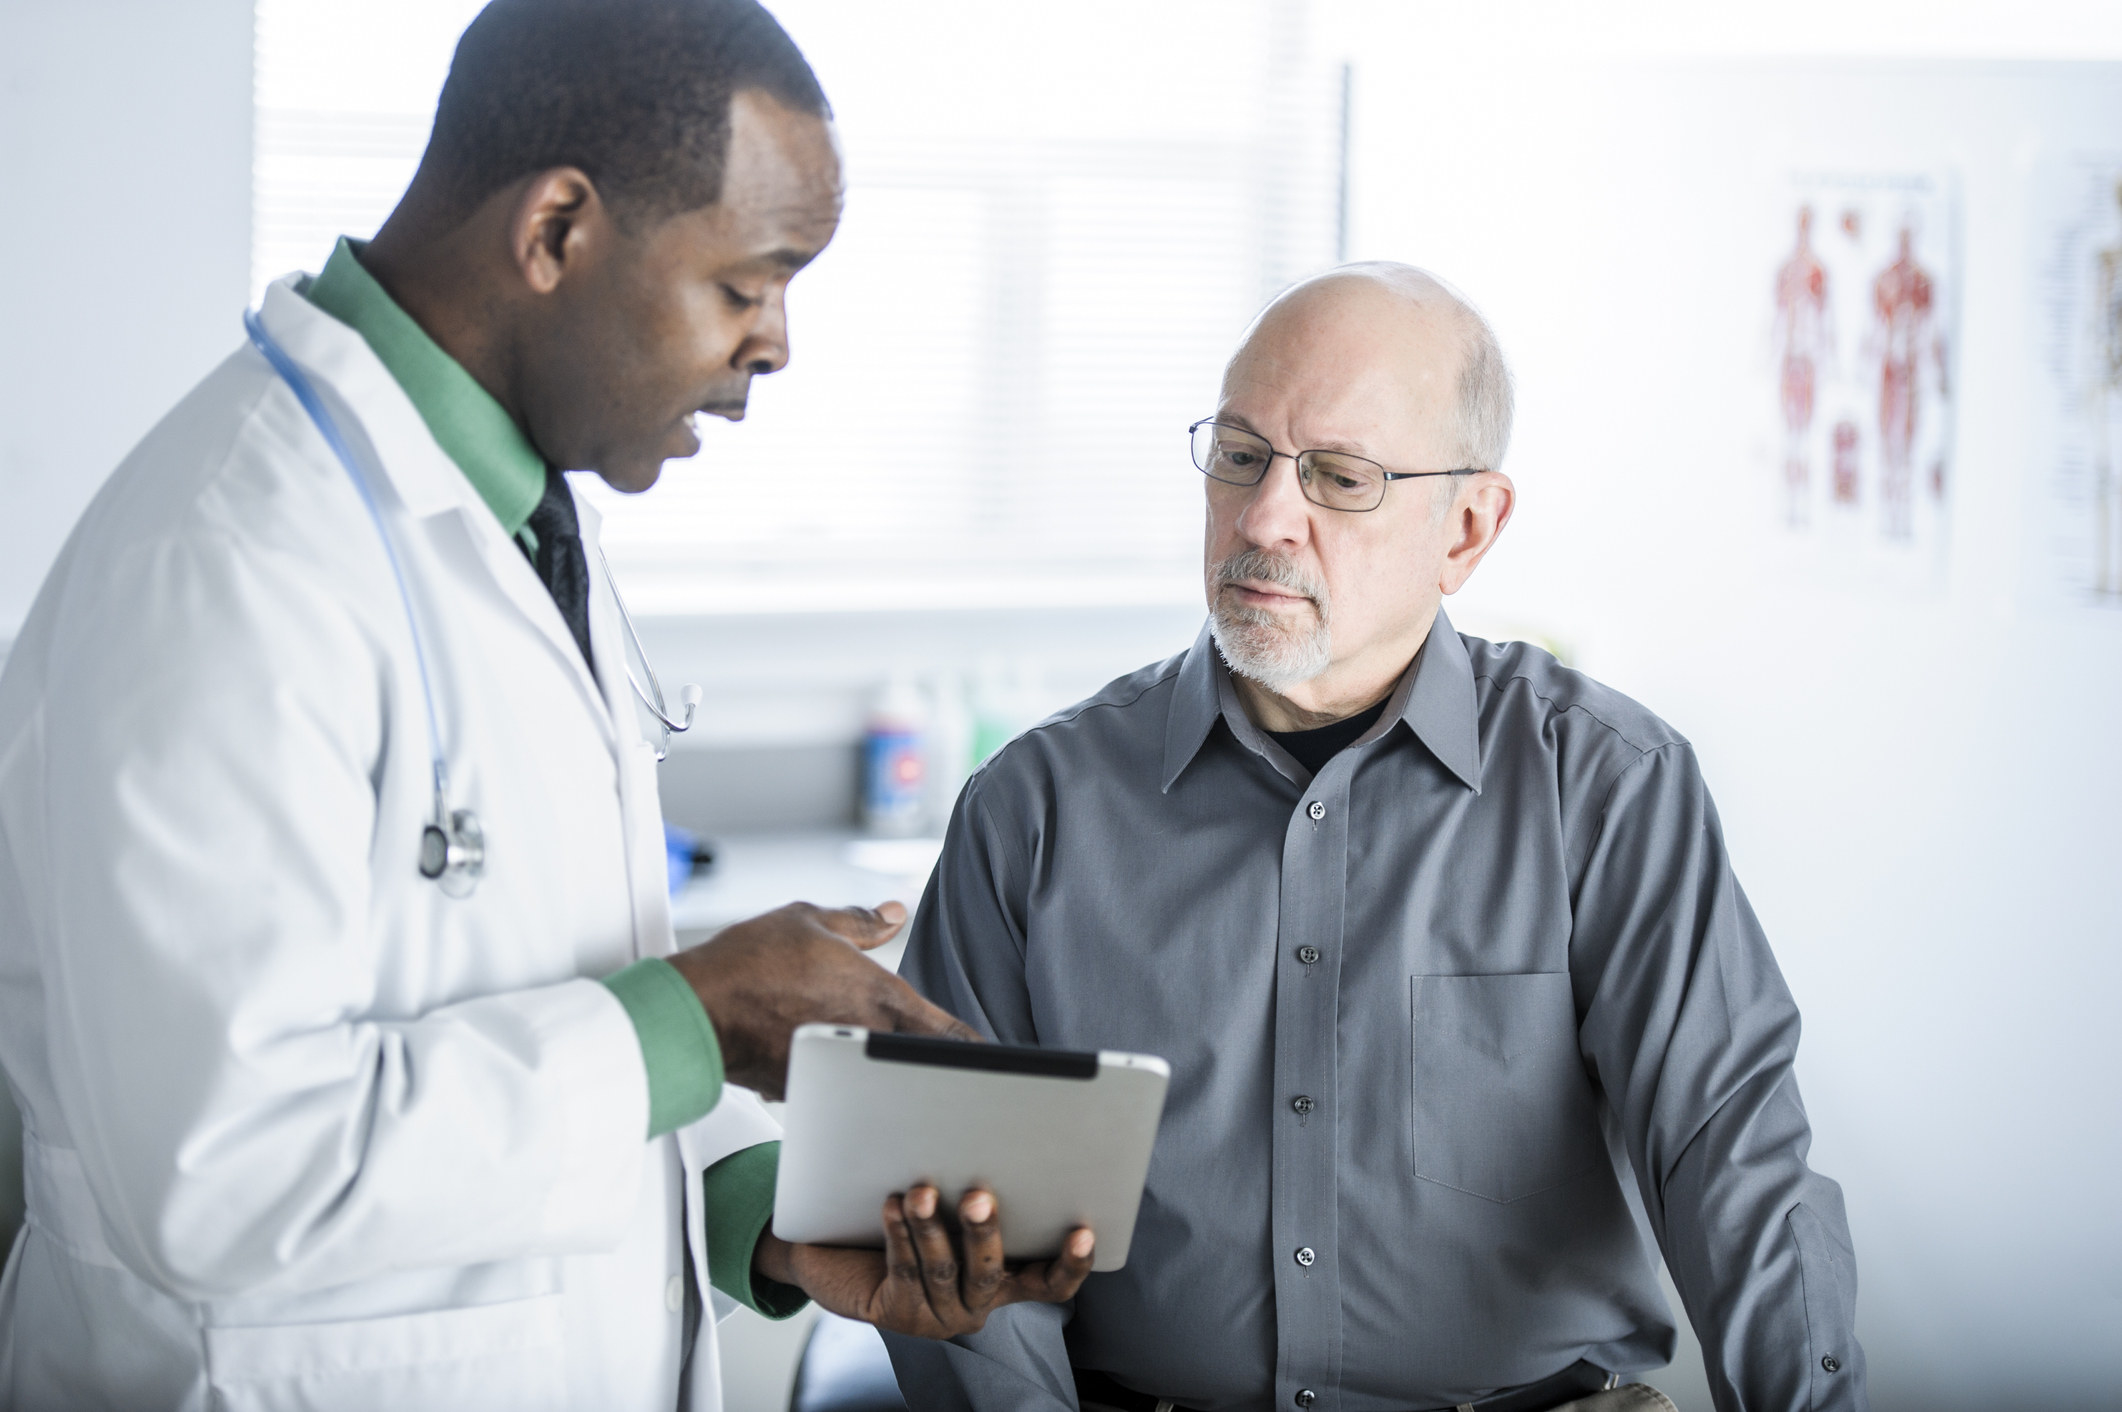 A doctor explaining something to a patient